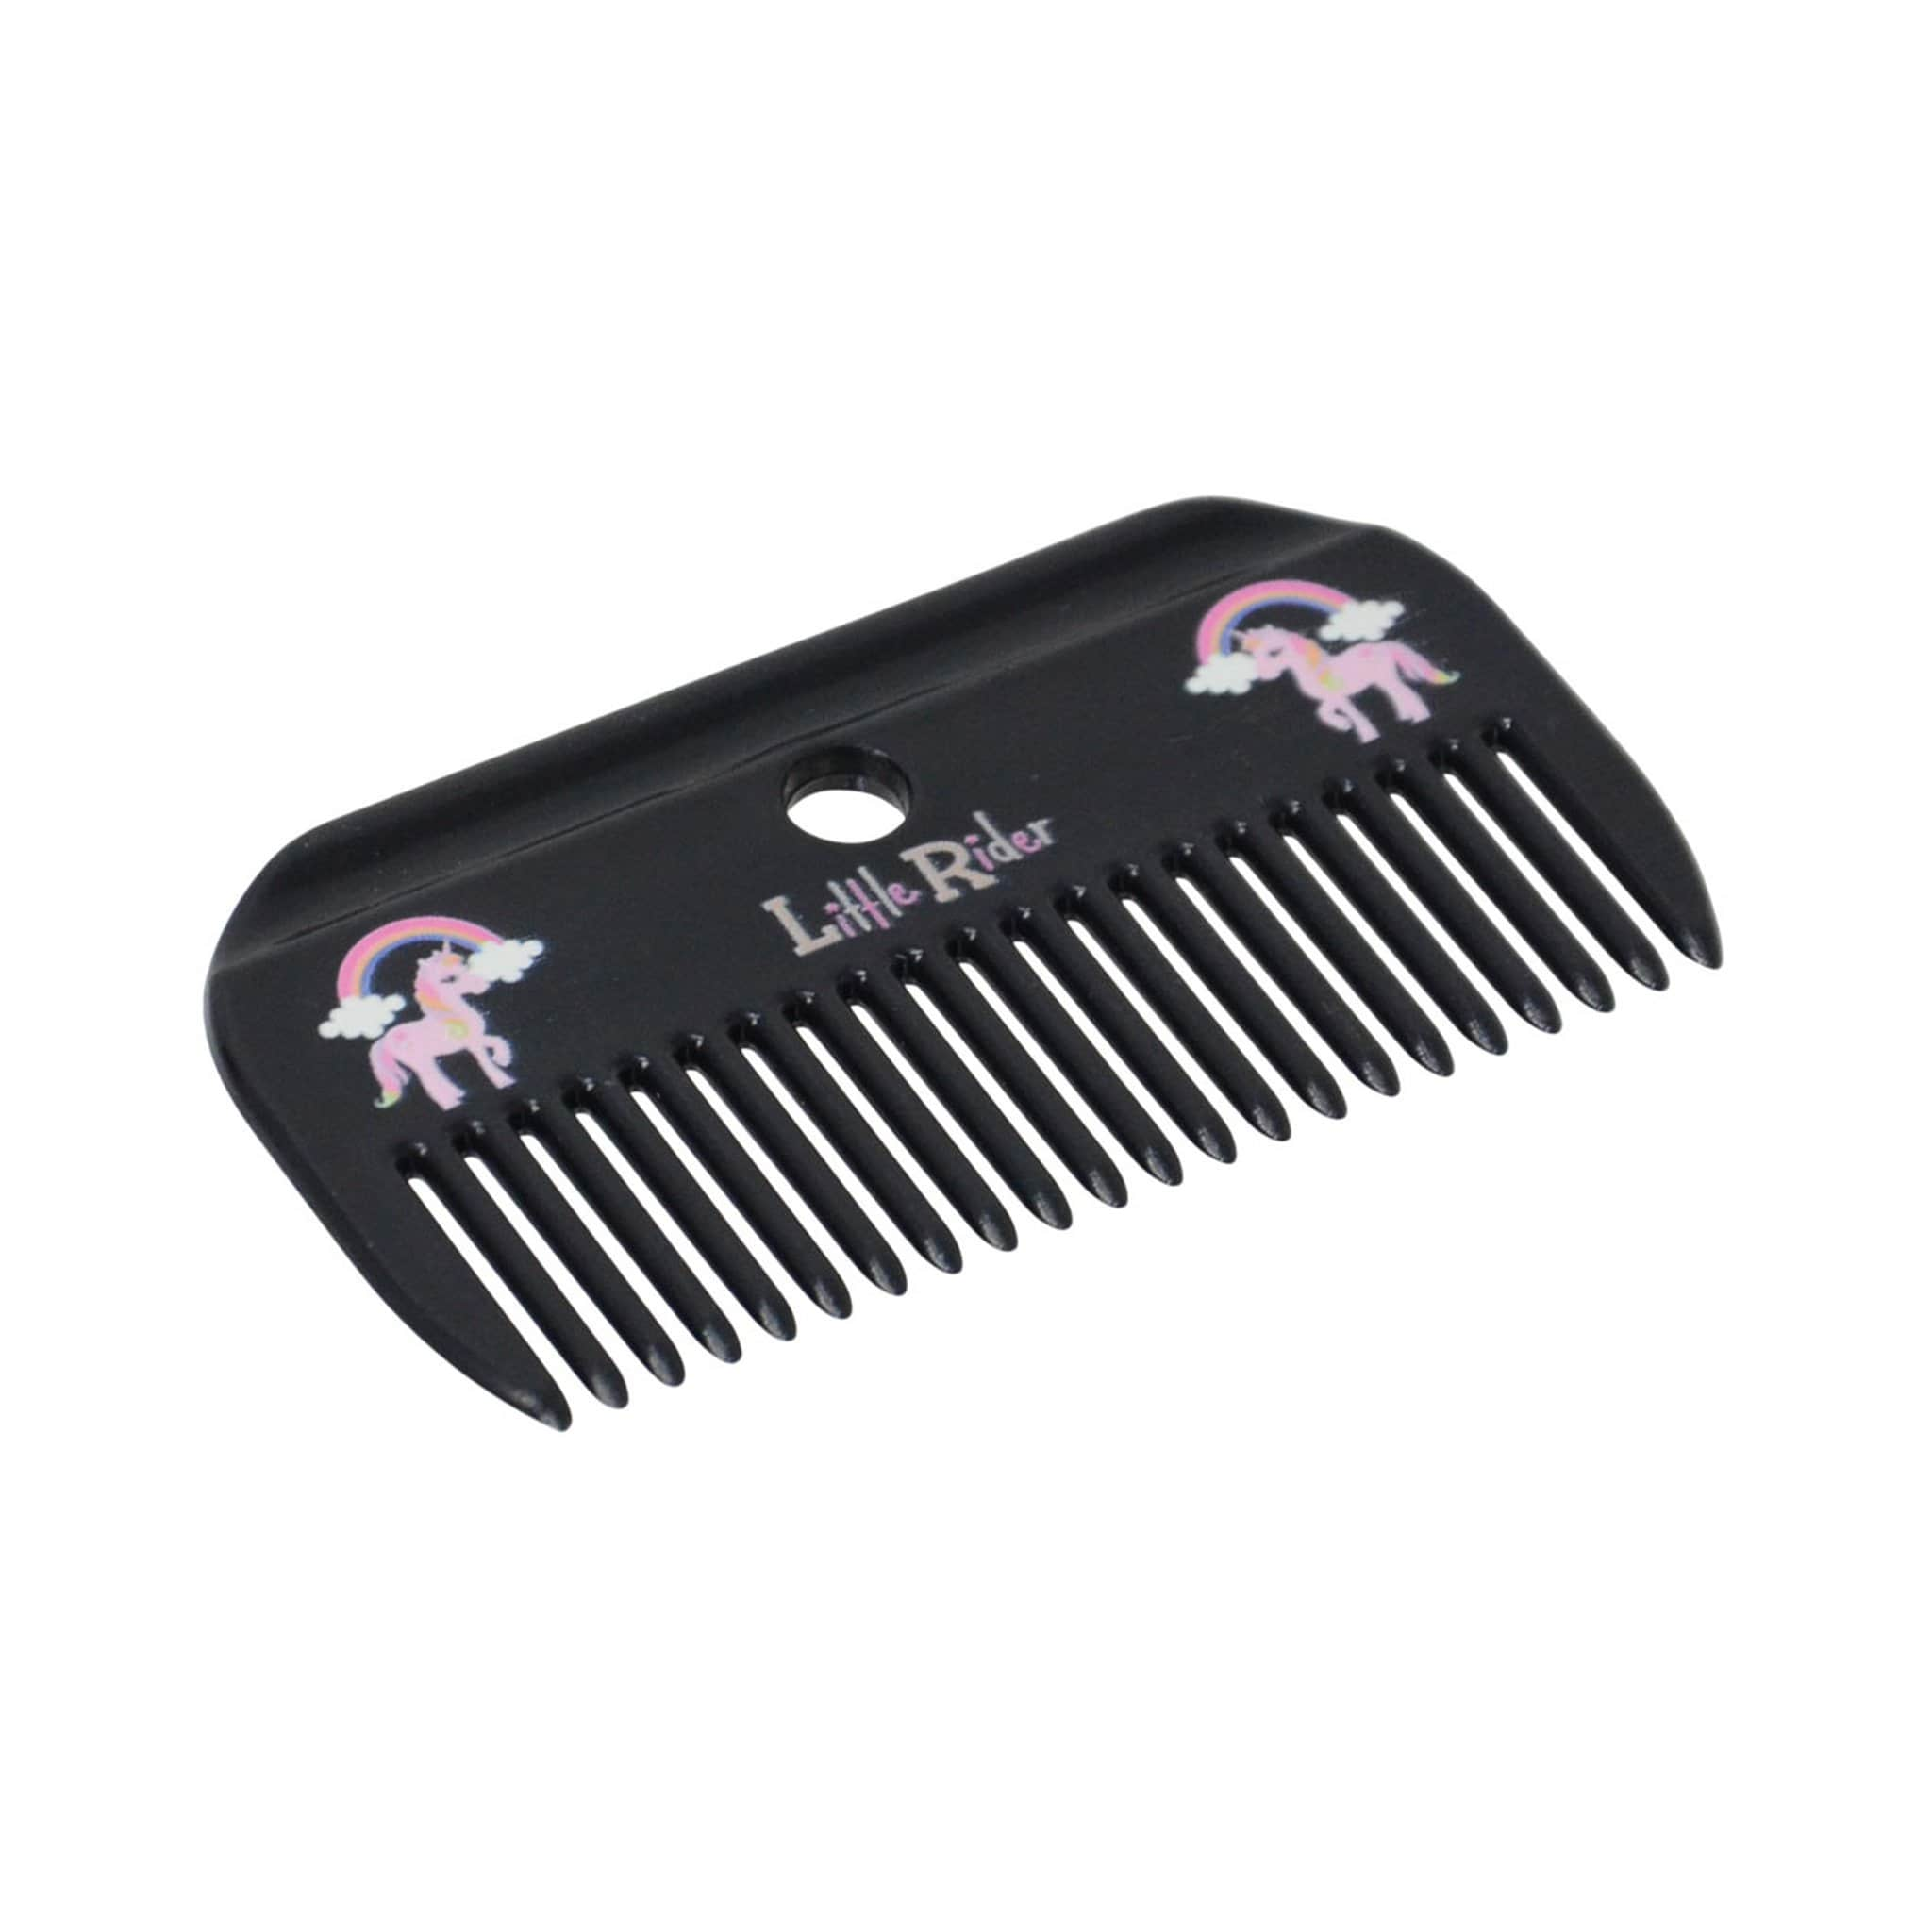 Hy Little Rider Little Unicorn Mane Comb 24304